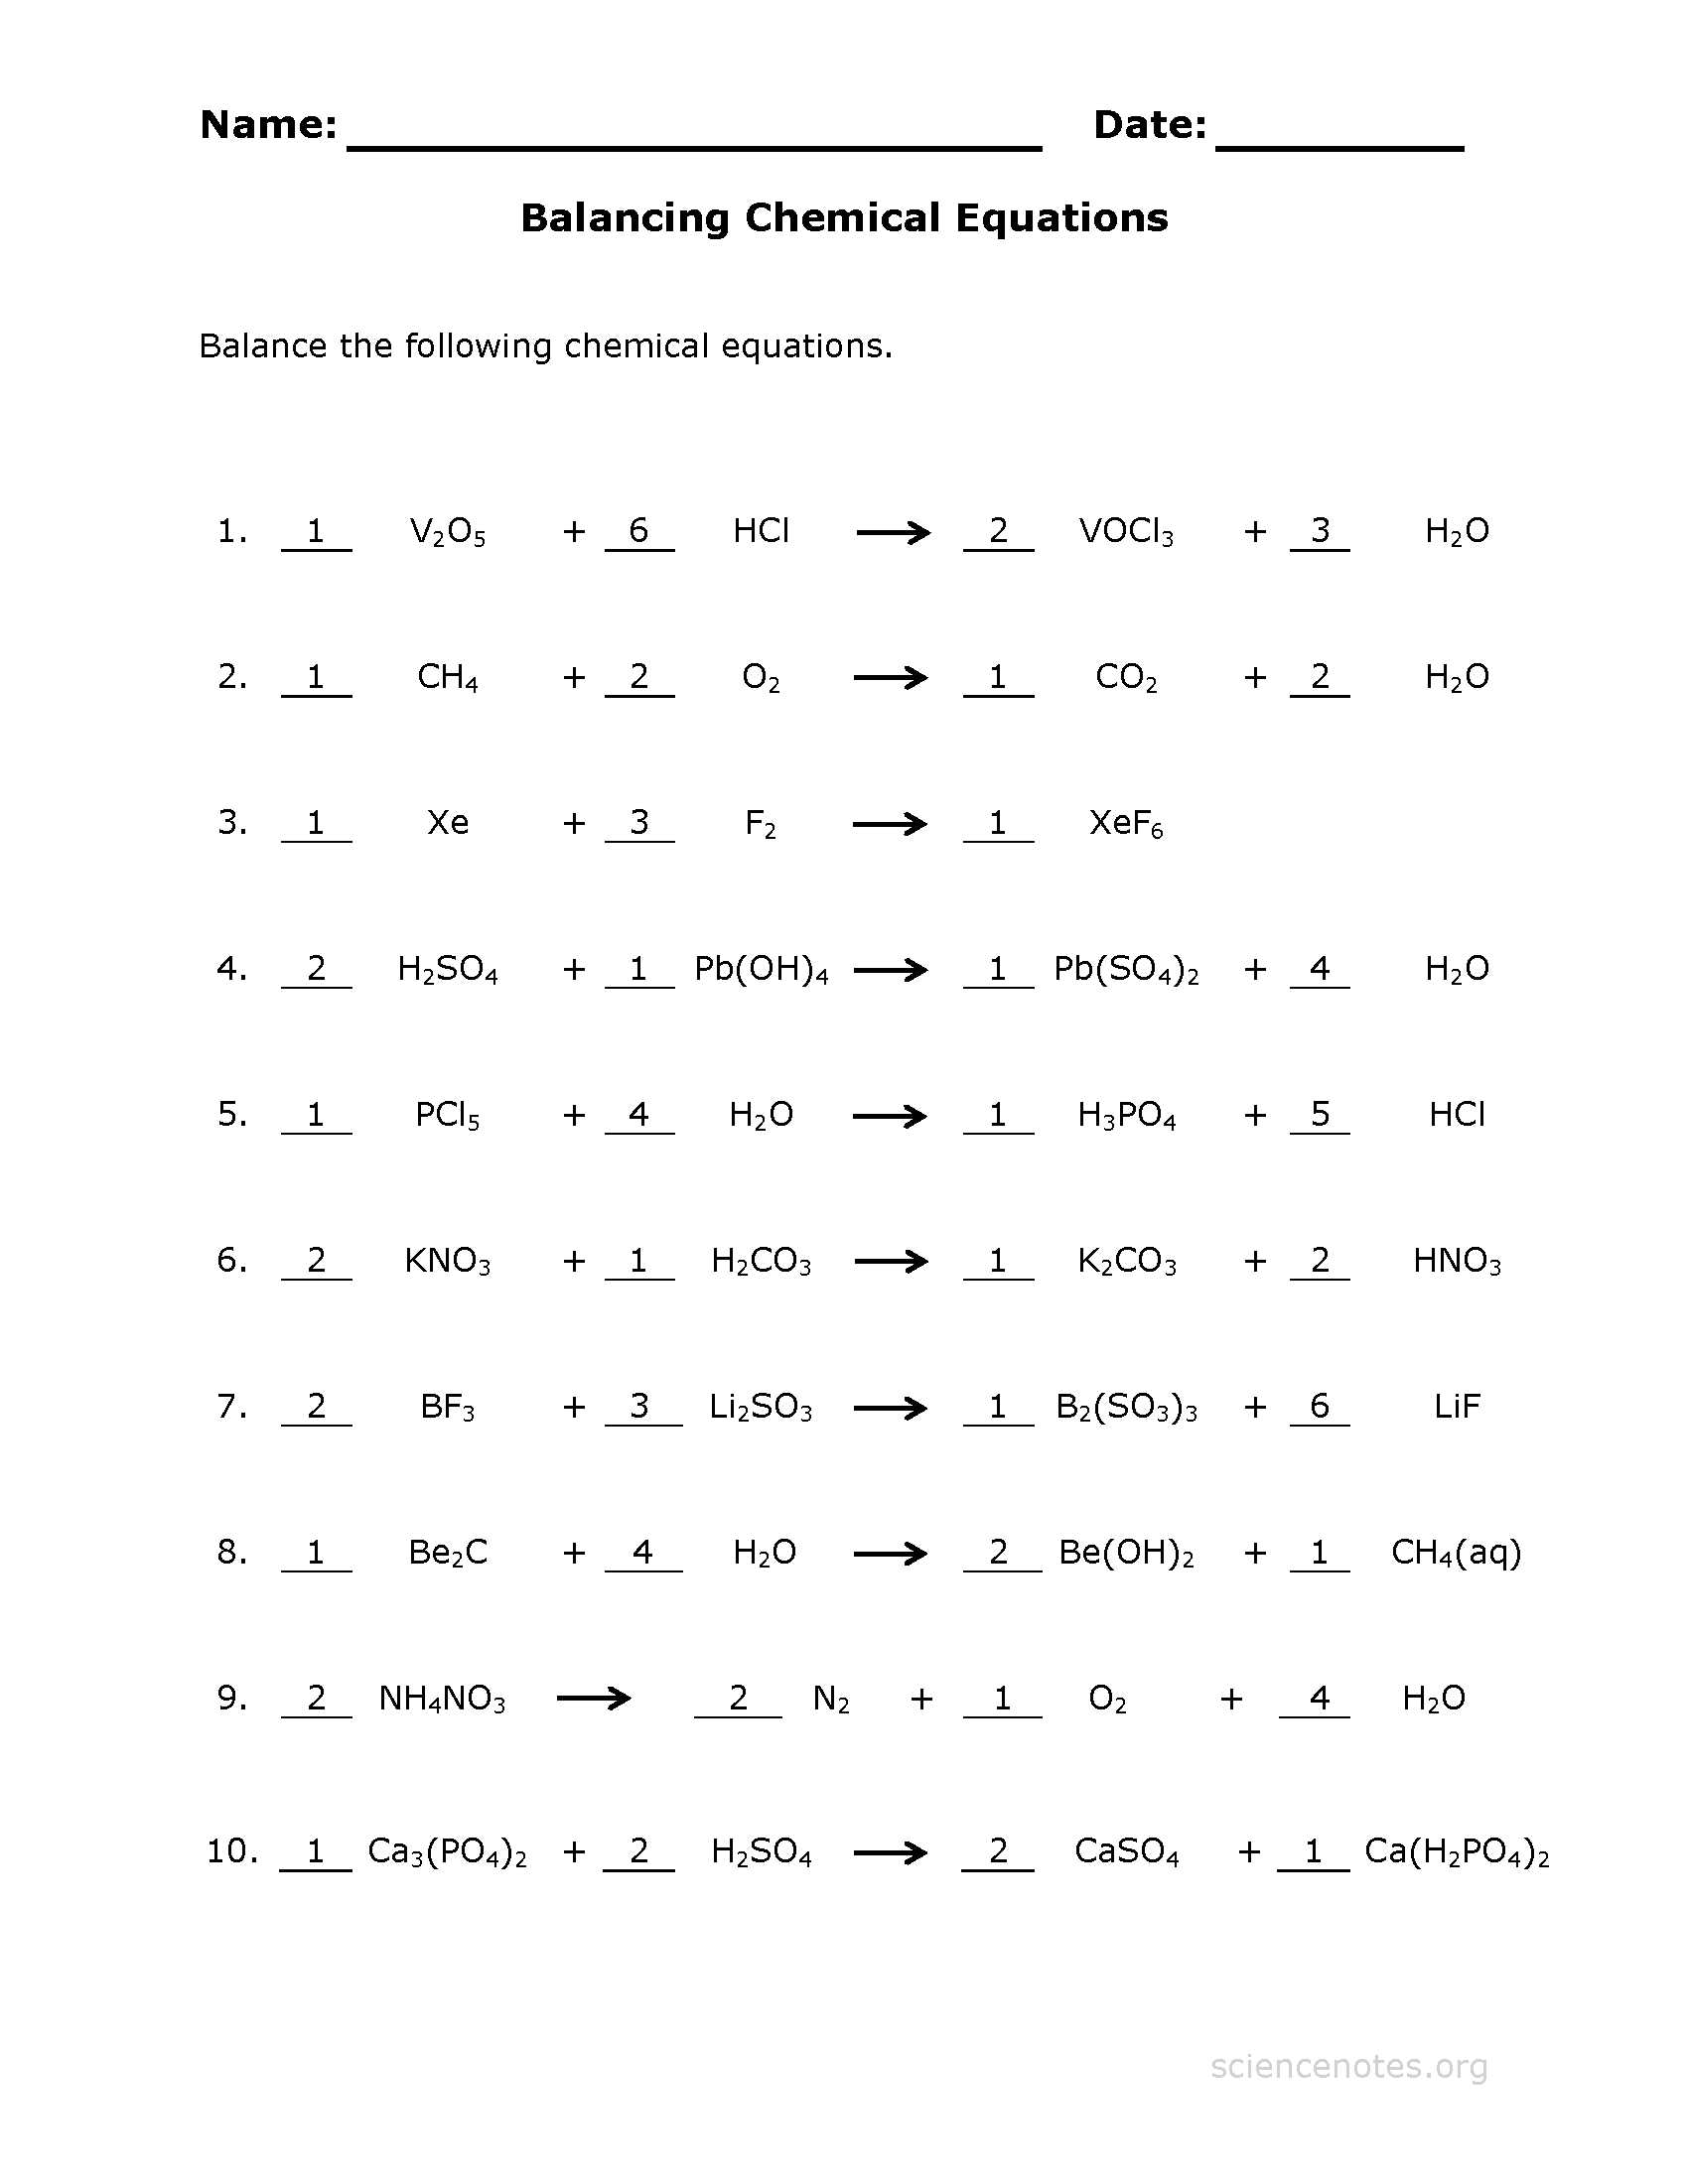 Solving Systems Of Equations Word Problems Worksheet Answer Key as Well as How to Balance Equations Printable Worksheets